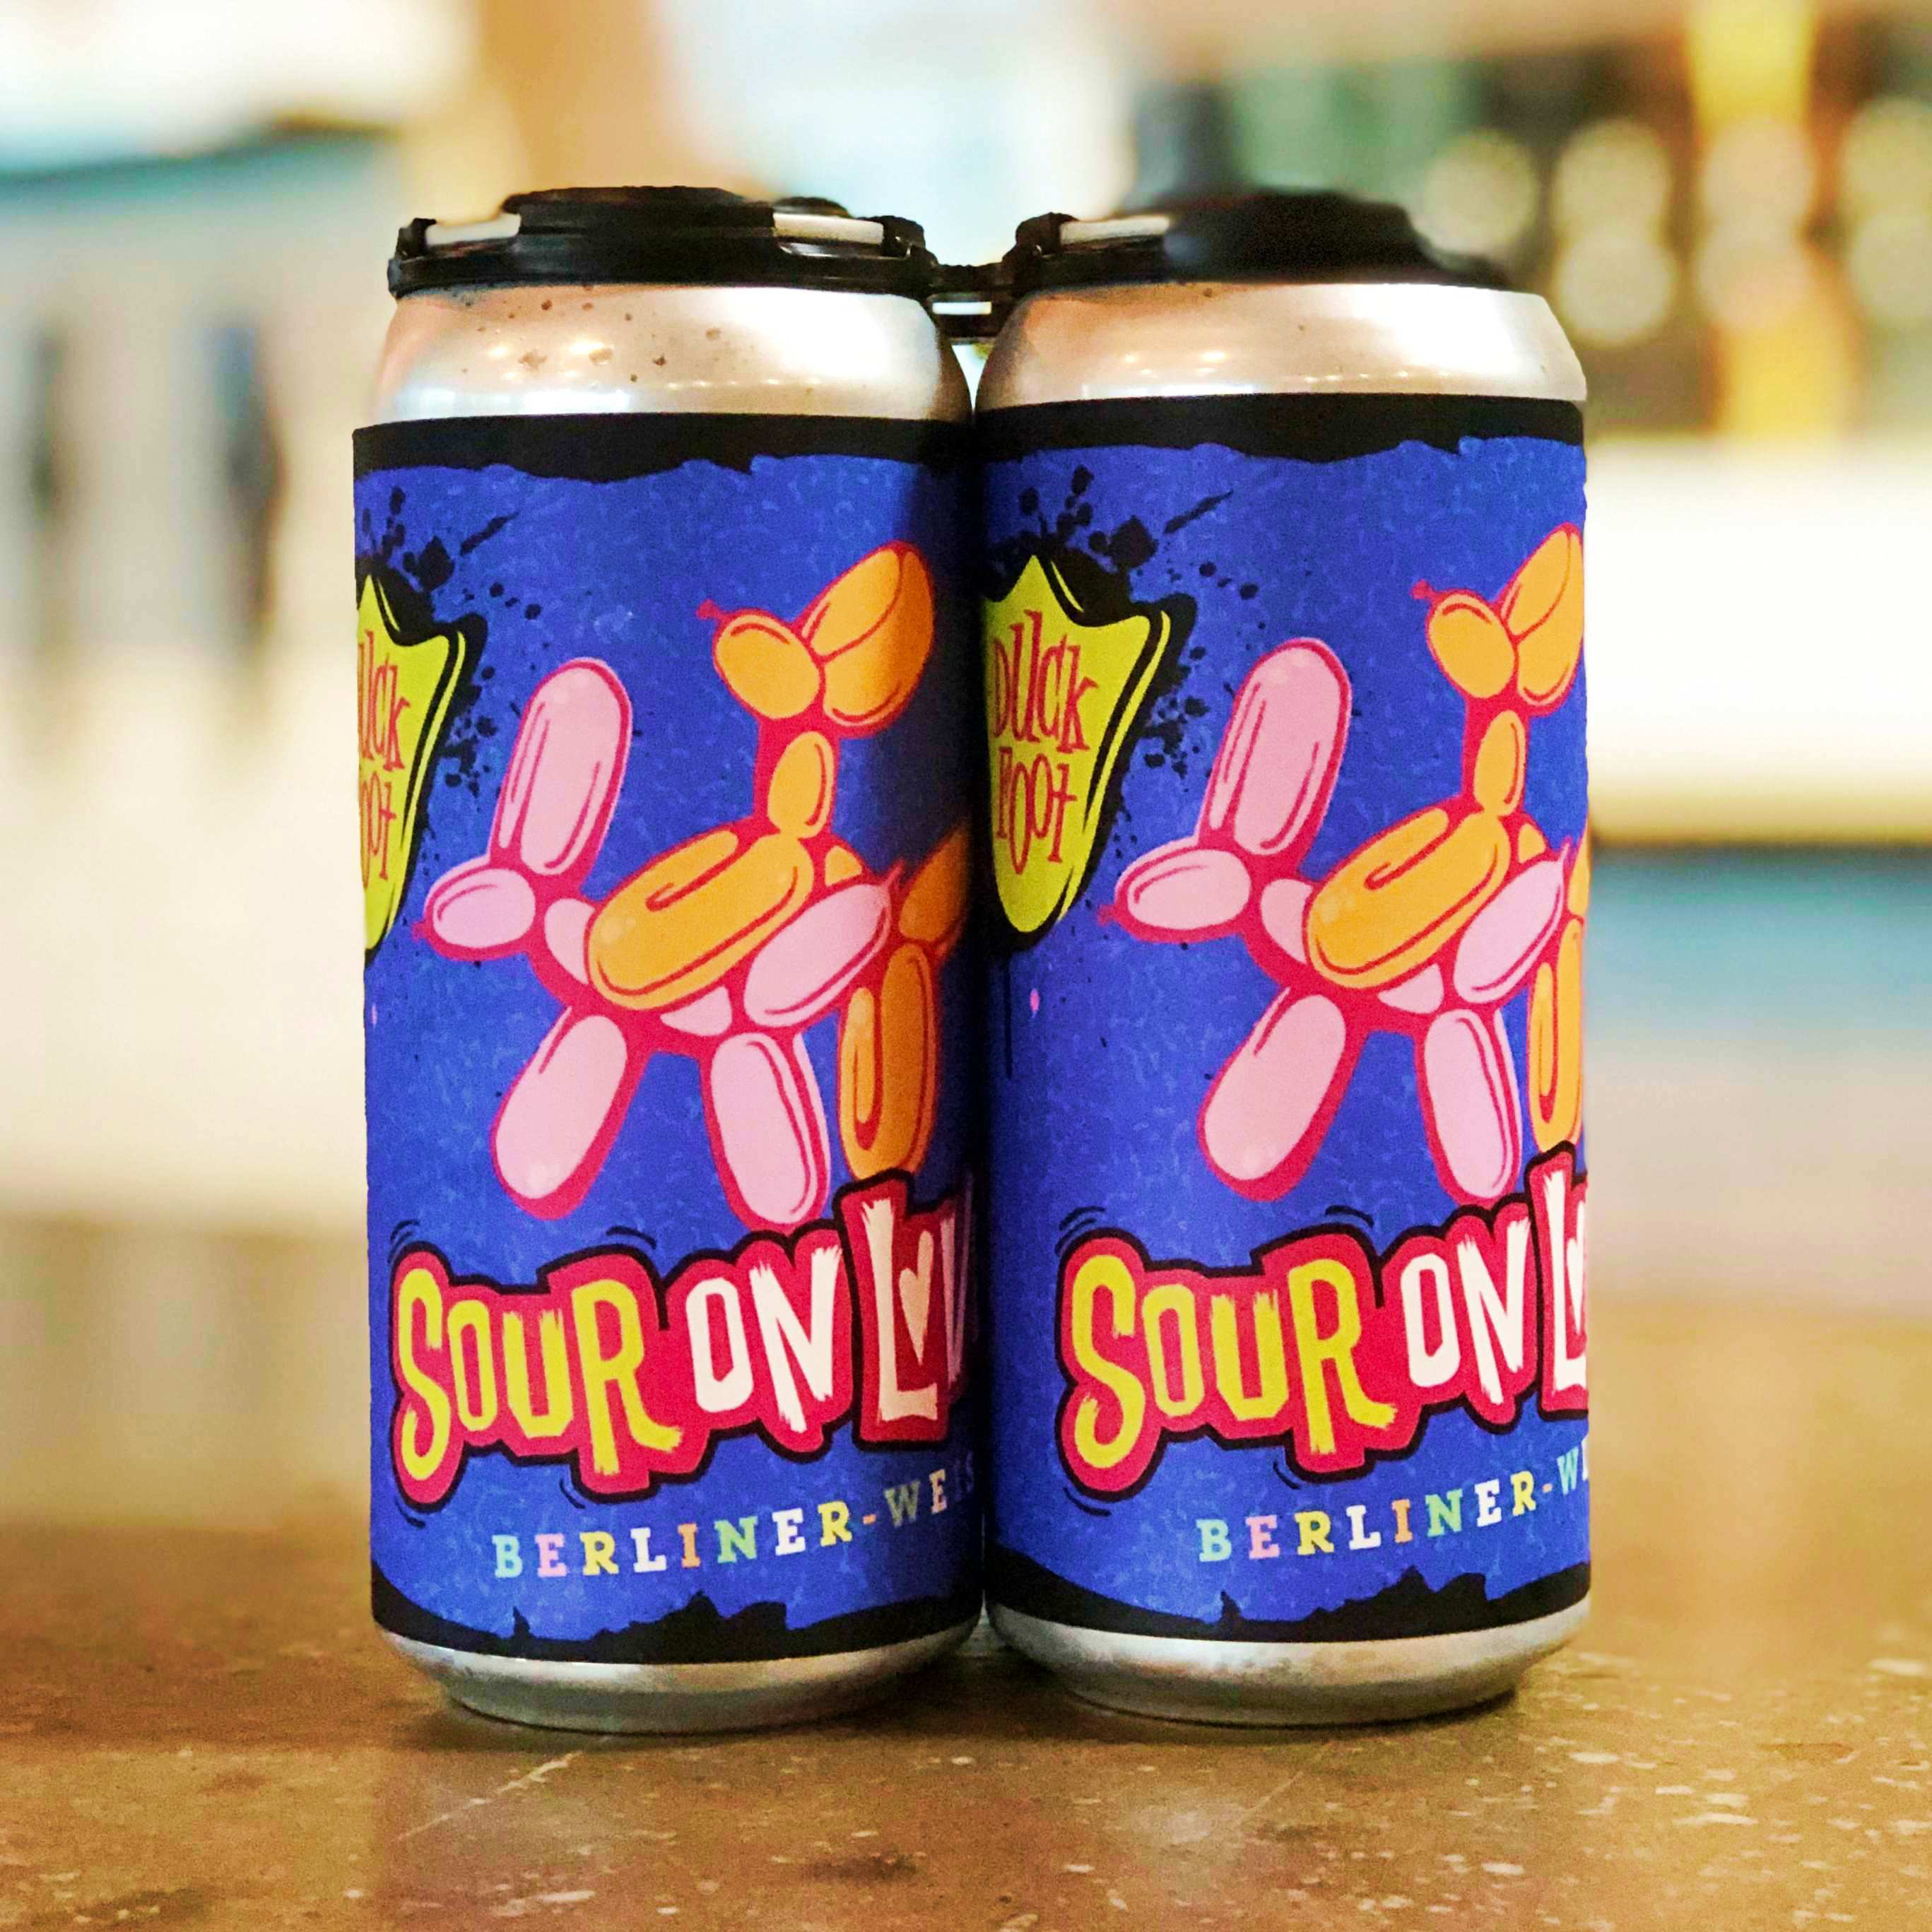 Sour on Love (4 Pack of 16oz Cans)